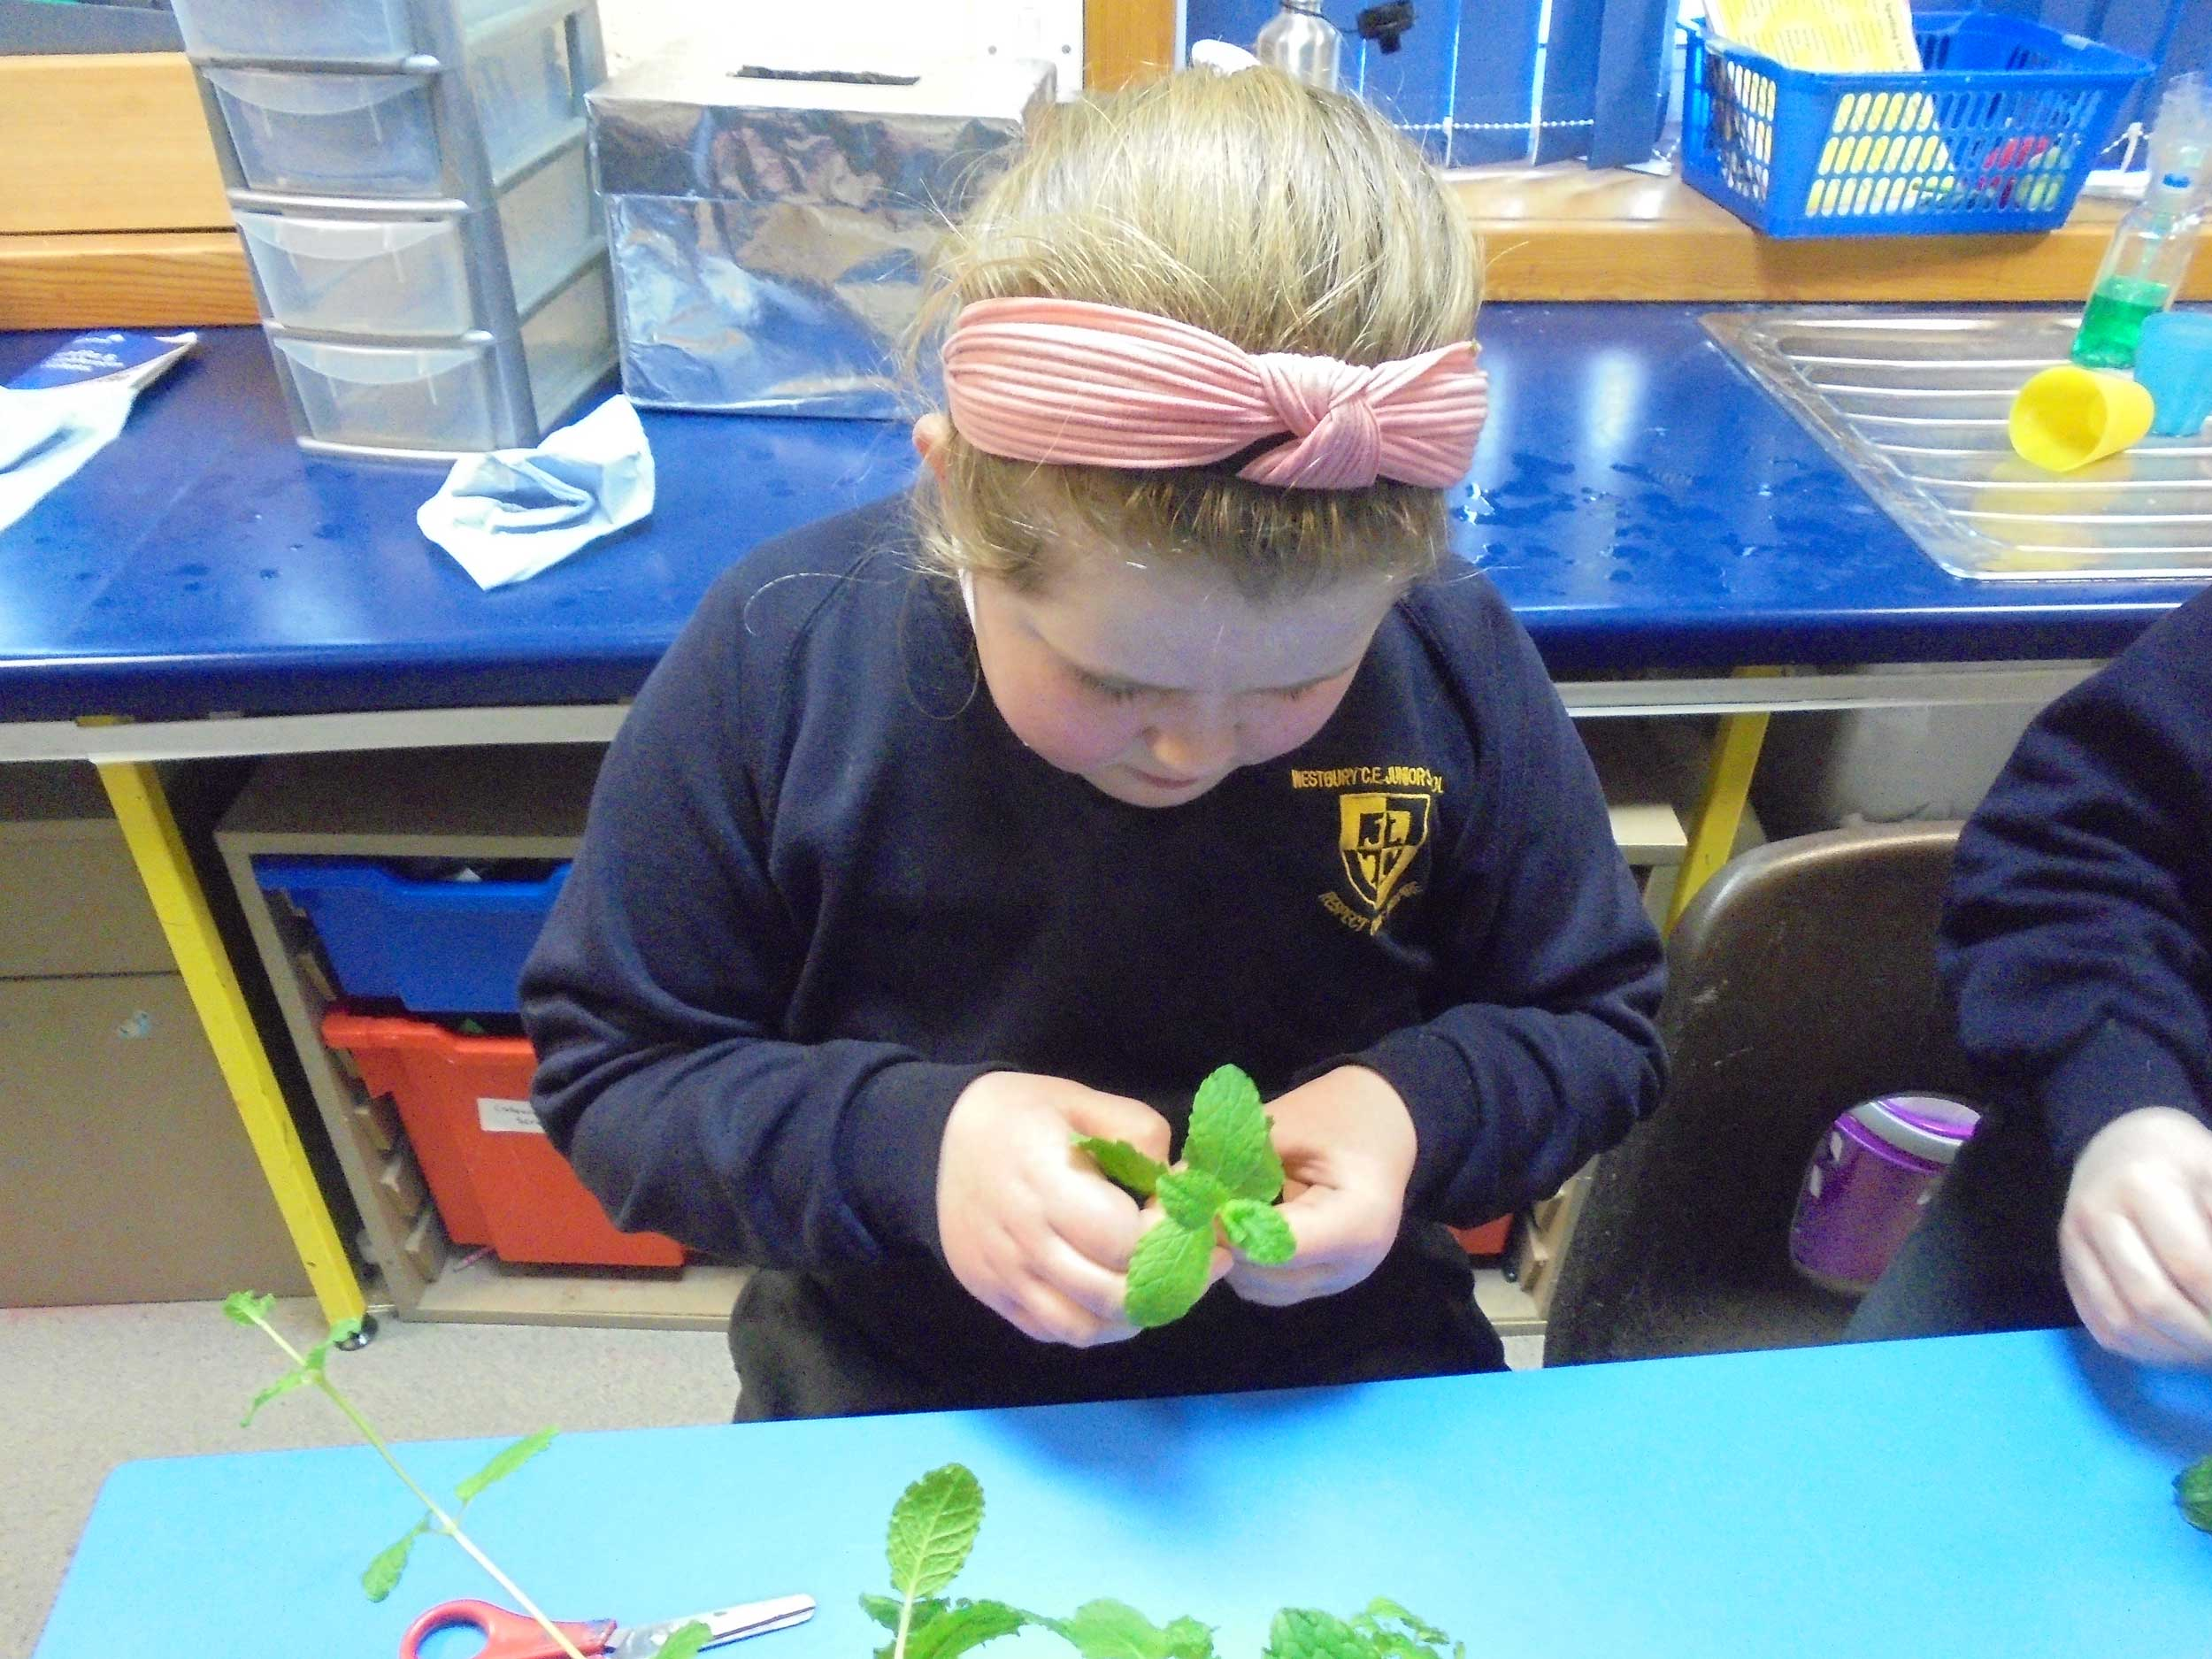 Year 5 Classes. We took cuttings of mint plants in Science as part of our work on the different ways plants reproduce.